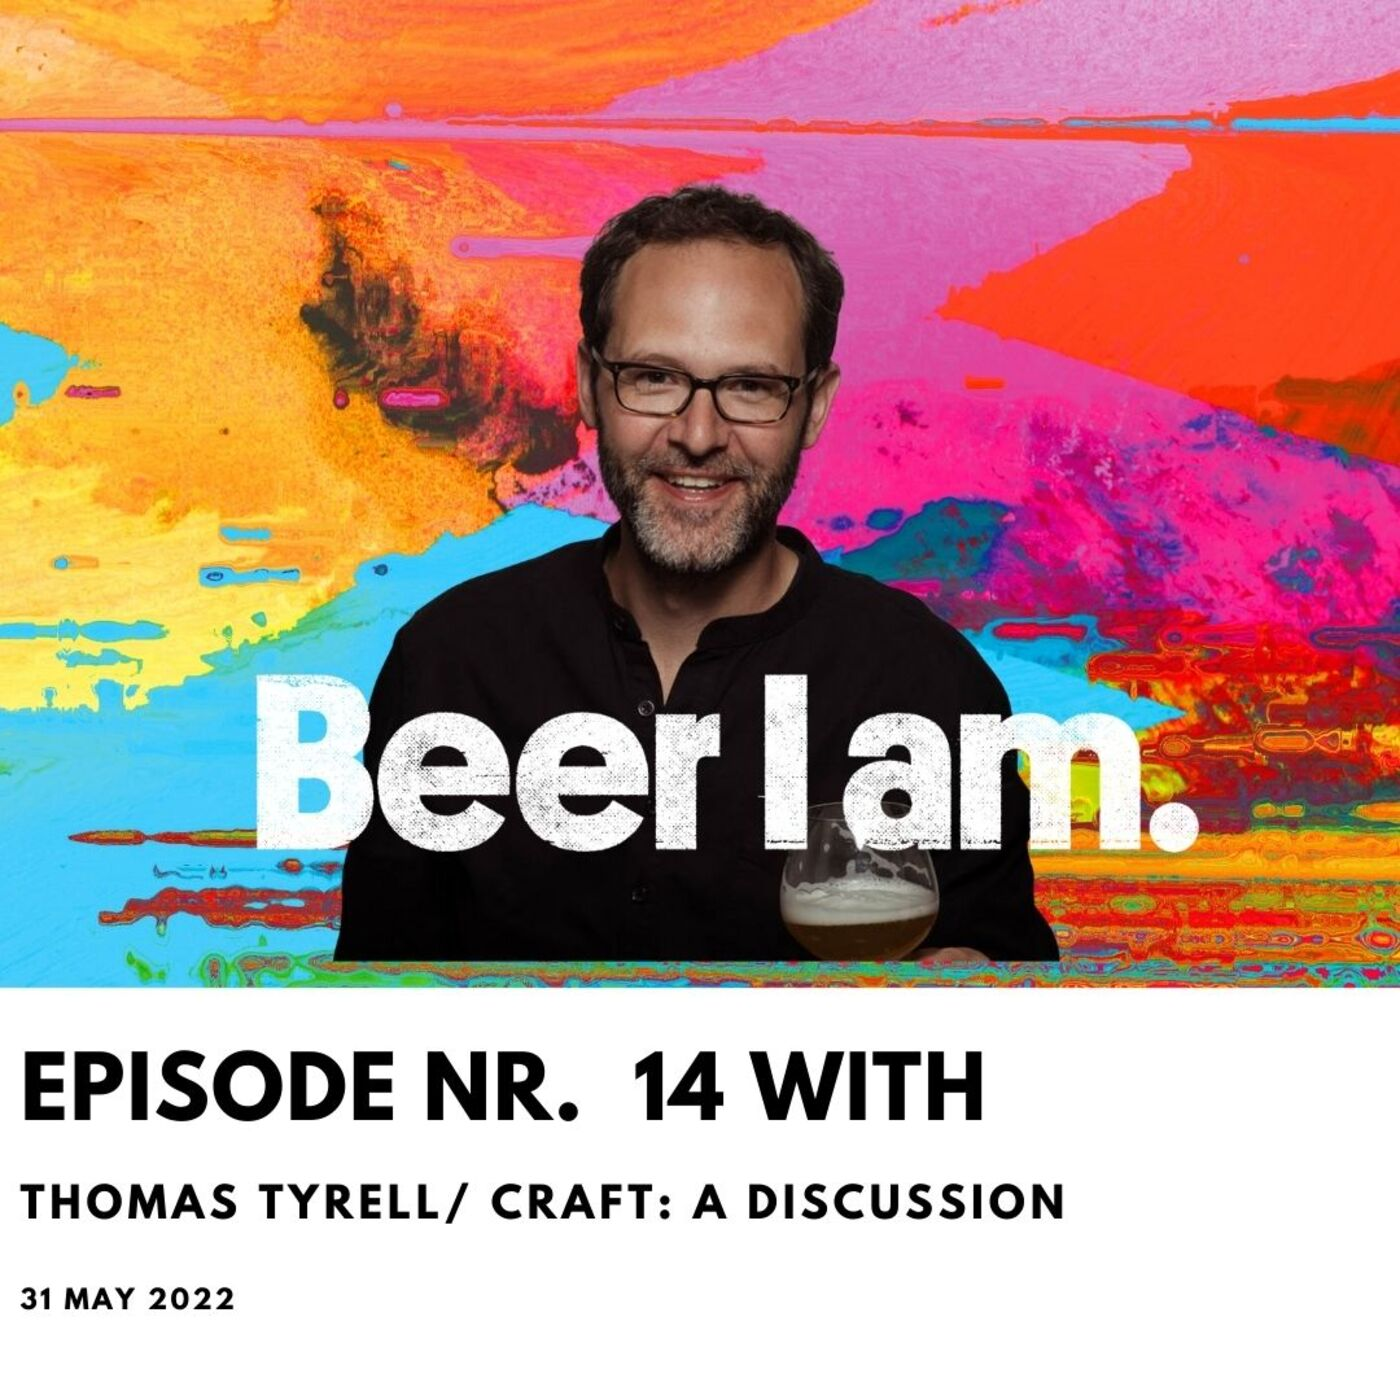 BEER I AM Podcast Nr. 14 Thomas Tyrell / CRAFT: A Discussion